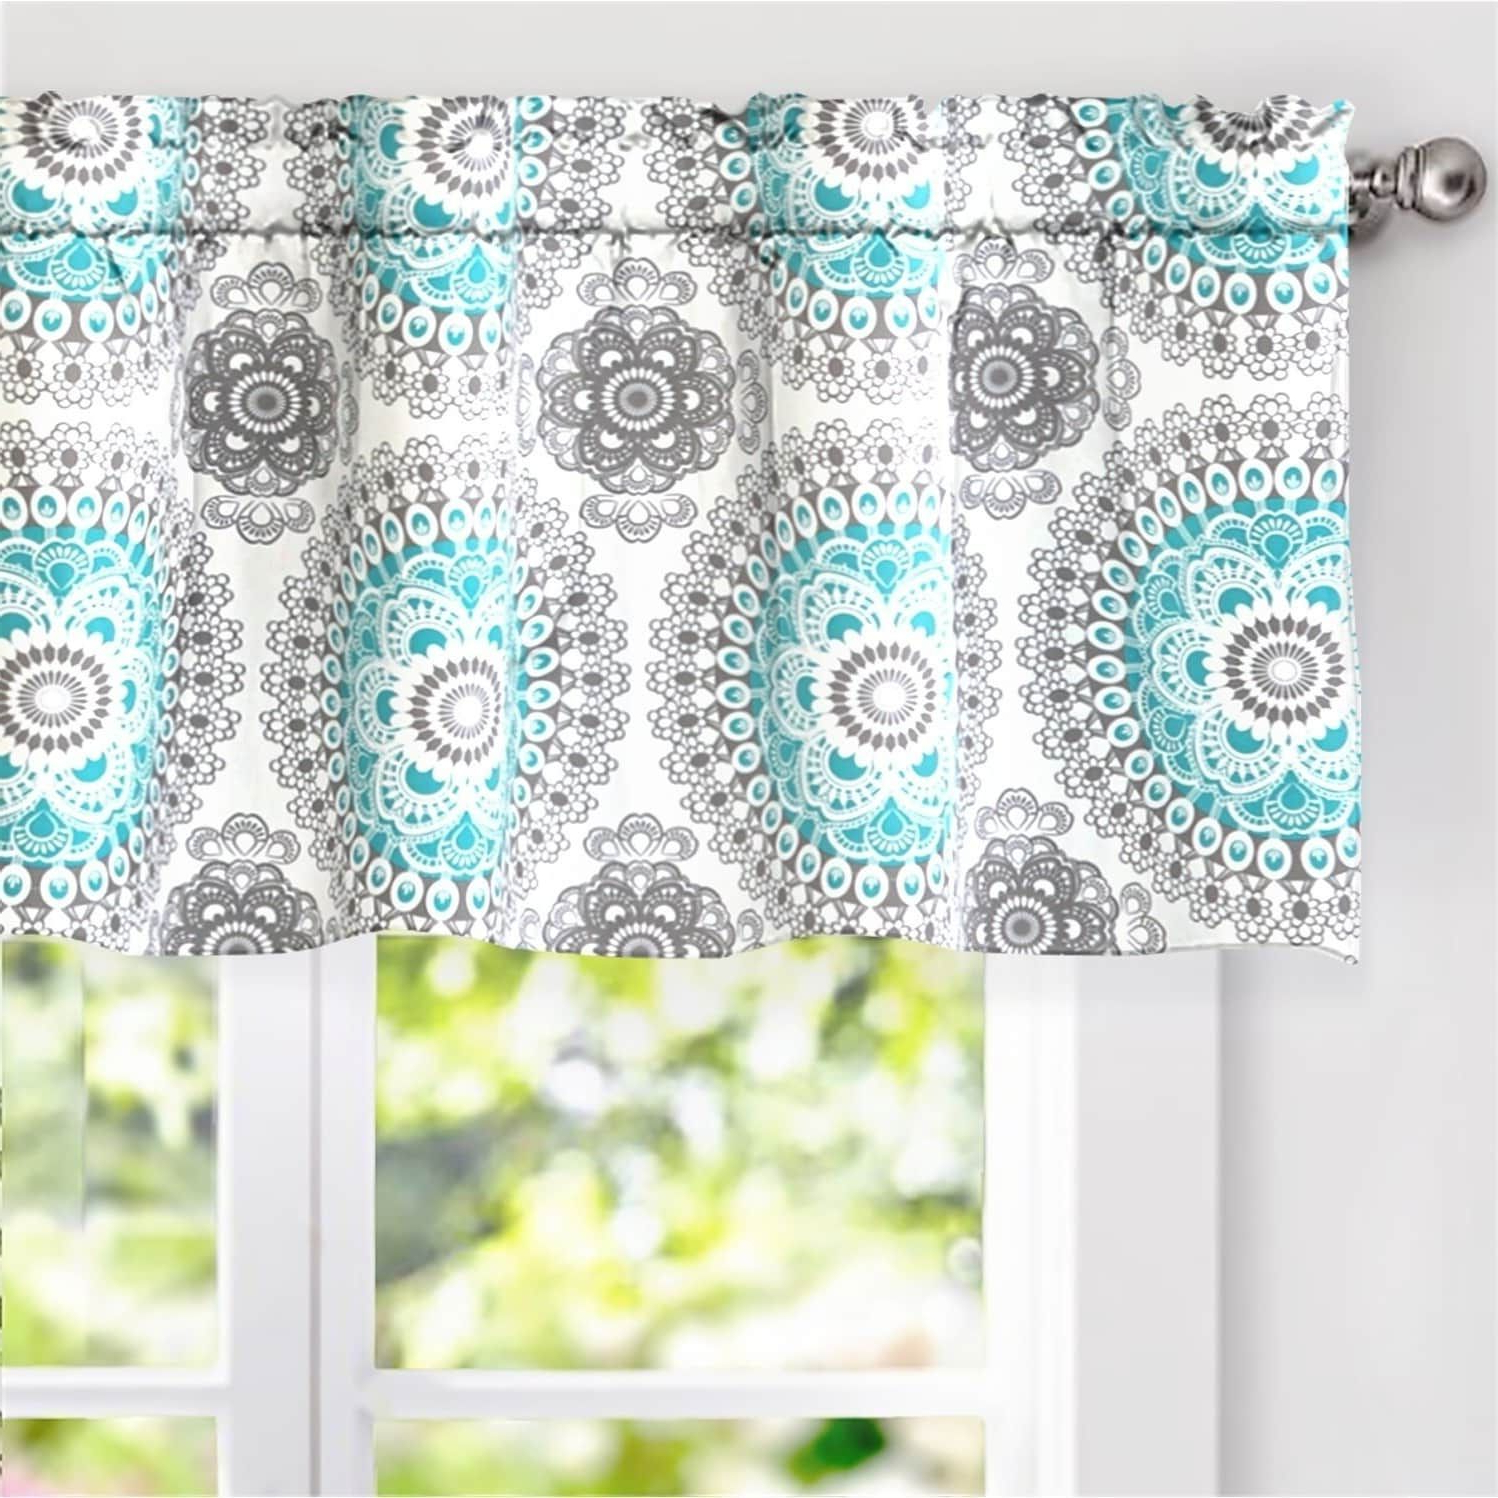 """Driftaway Bella Medallion Window Curtain Valance, 52"""" Wide X Intended For Best And Newest Medallion Window Curtain Valances (View 2 of 20)"""